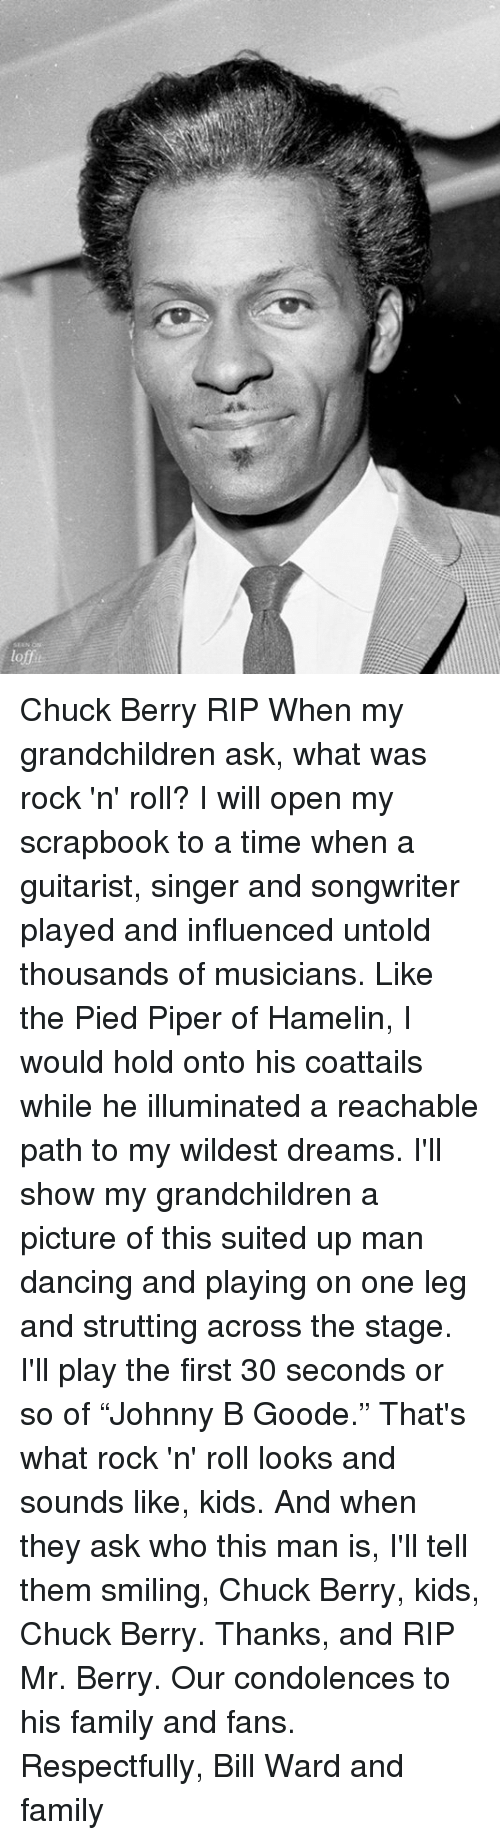 """Memes, 🤖, and Chuck: loft Chuck Berry RIP  When my grandchildren ask, what was rock 'n' roll?  I will open my scrapbook to a time when a guitarist, singer and songwriter played and influenced untold thousands of musicians.  Like the Pied Piper of Hamelin, I would hold onto his coattails while he illuminated a reachable path to my wildest dreams.   I'll show my grandchildren a picture of this suited up man dancing and playing on one leg and strutting across the stage.  I'll play the first 30 seconds or so of """"Johnny B Goode.""""   That's what rock 'n' roll looks and sounds like, kids.  And when they ask who this man is, I'll tell them smiling, Chuck Berry, kids, Chuck Berry.   Thanks, and RIP Mr. Berry.   Our condolences to his family and fans.   Respectfully, Bill Ward and family"""